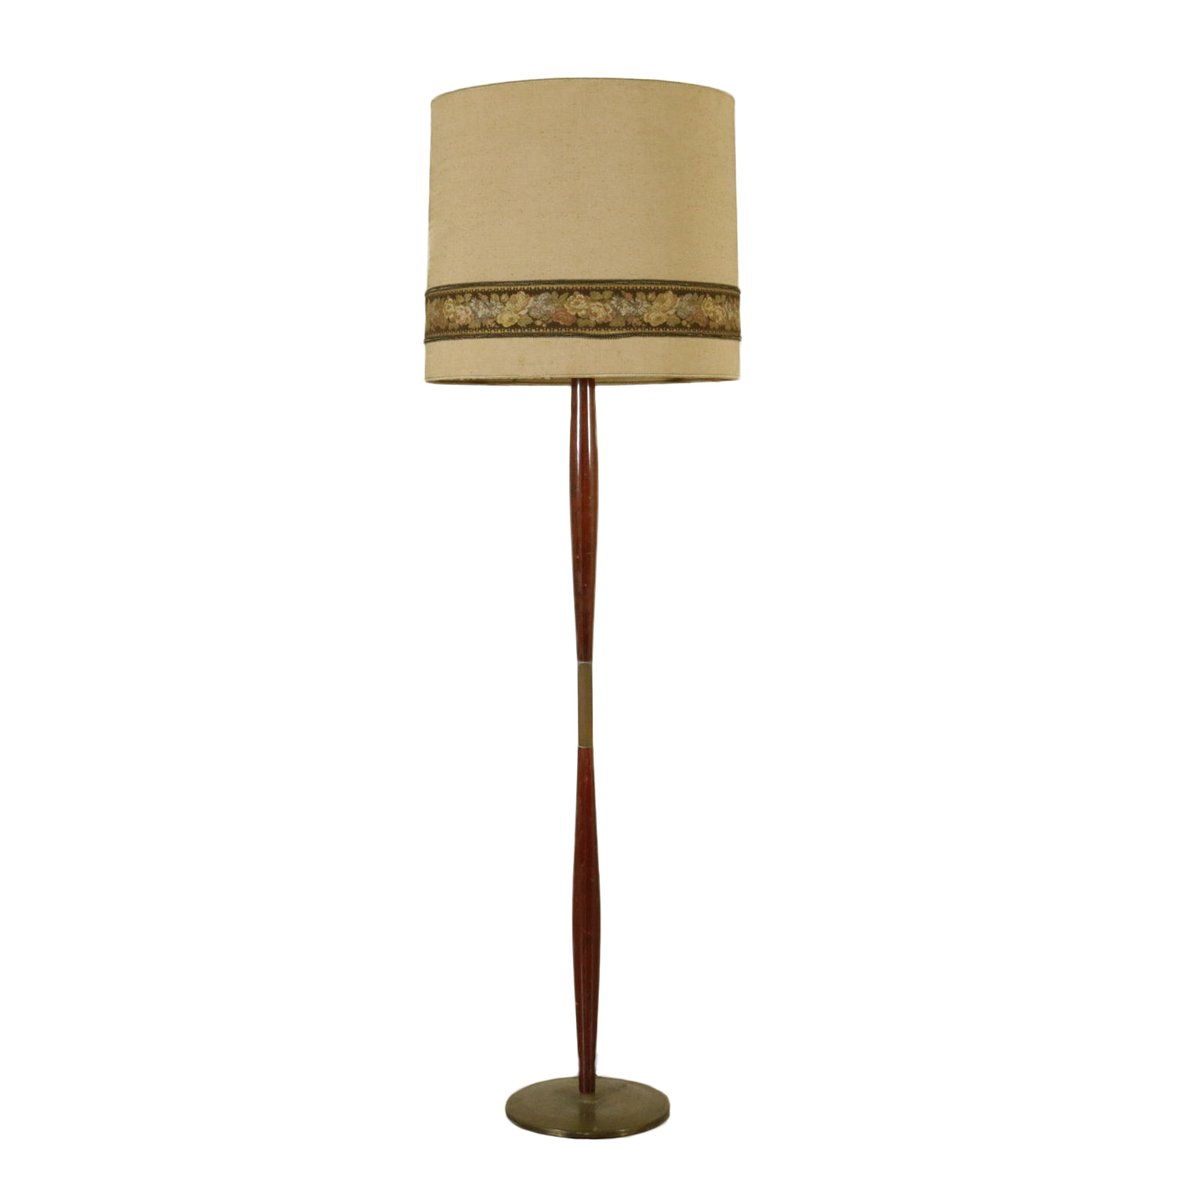 Wood and brass floor lamp 1950s for sale at pamono for Wooden floor lamp for sale